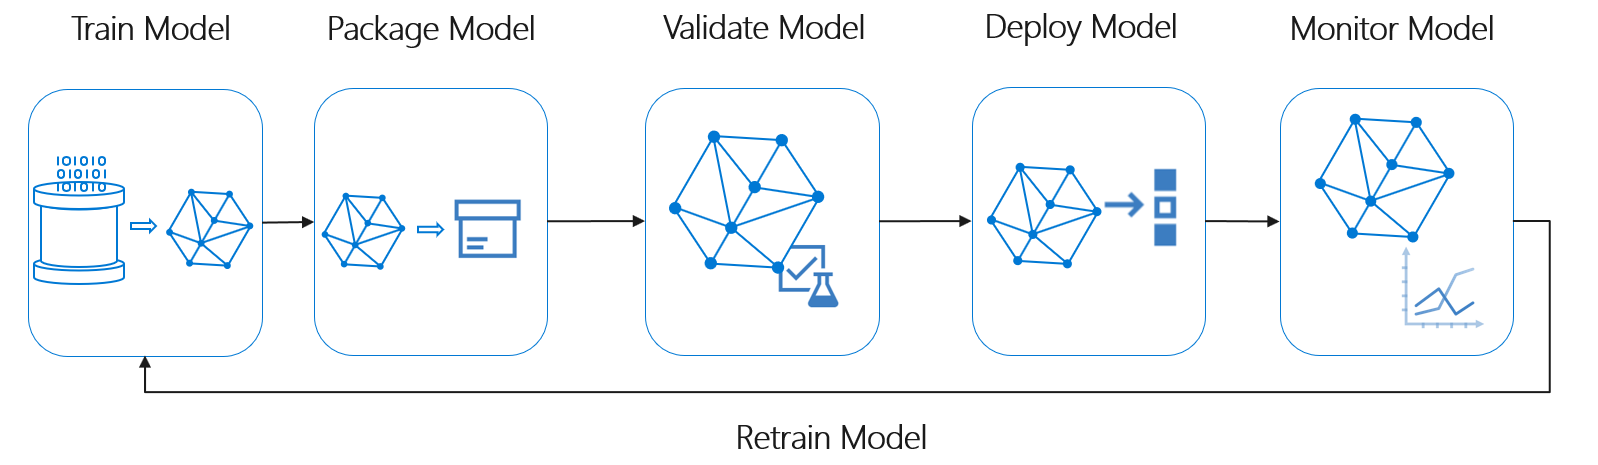 Operationalize models effeciently with MLOps